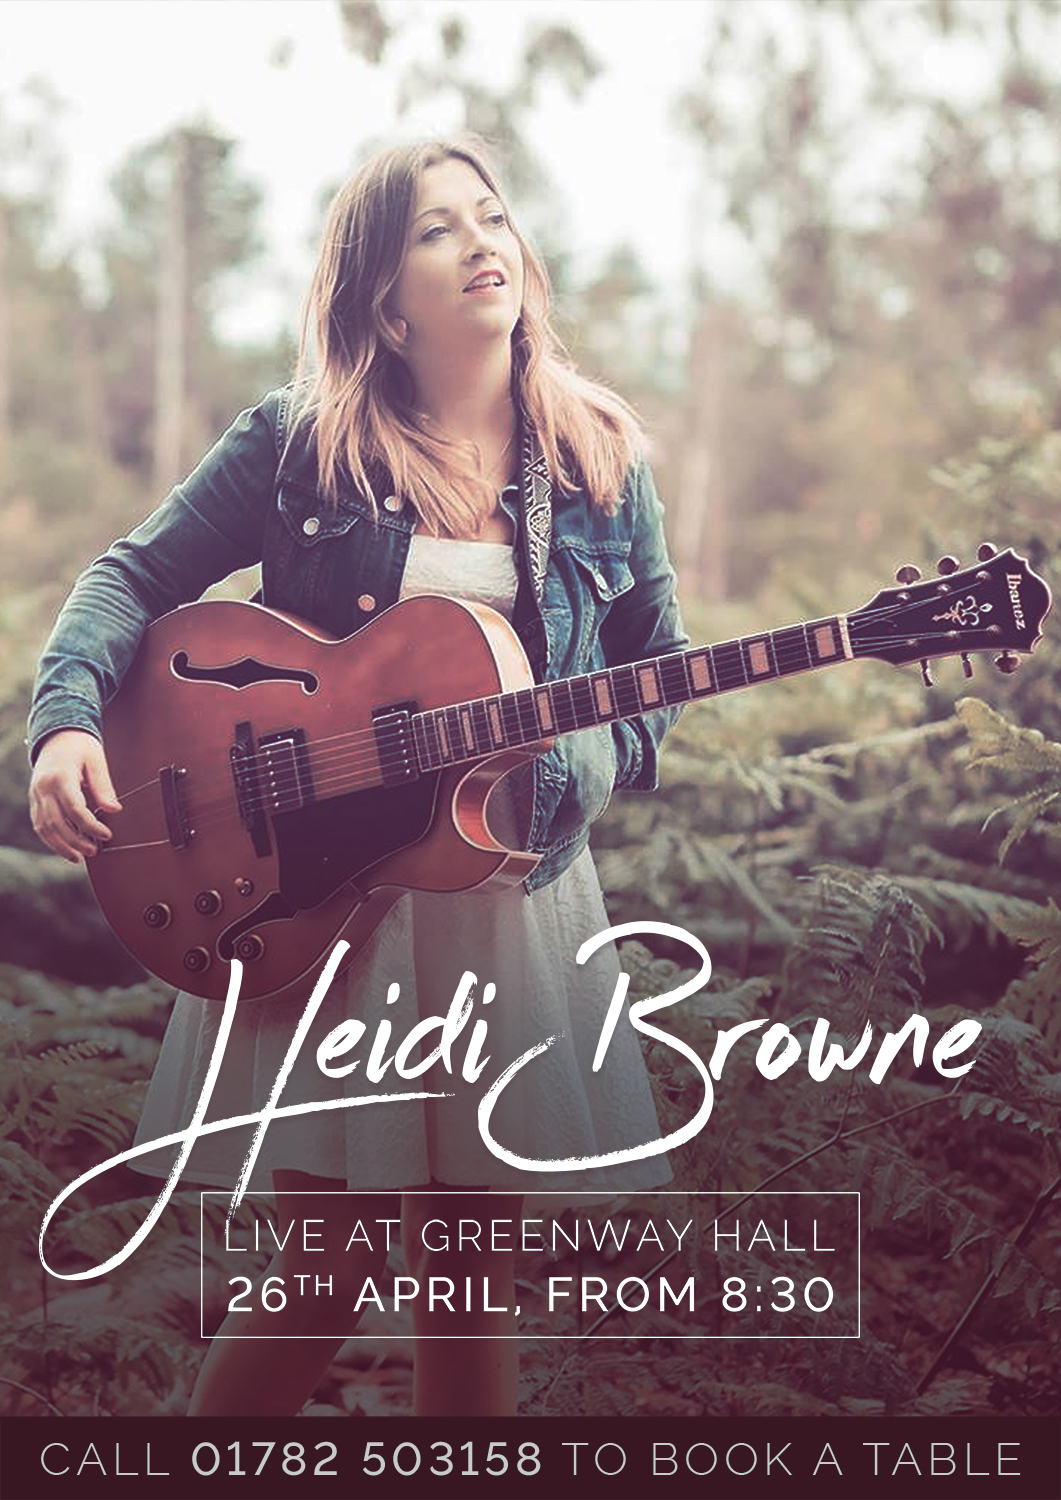 Book a table to come and see Heidi Browne perform live at Greenway Hall on the 26th April.